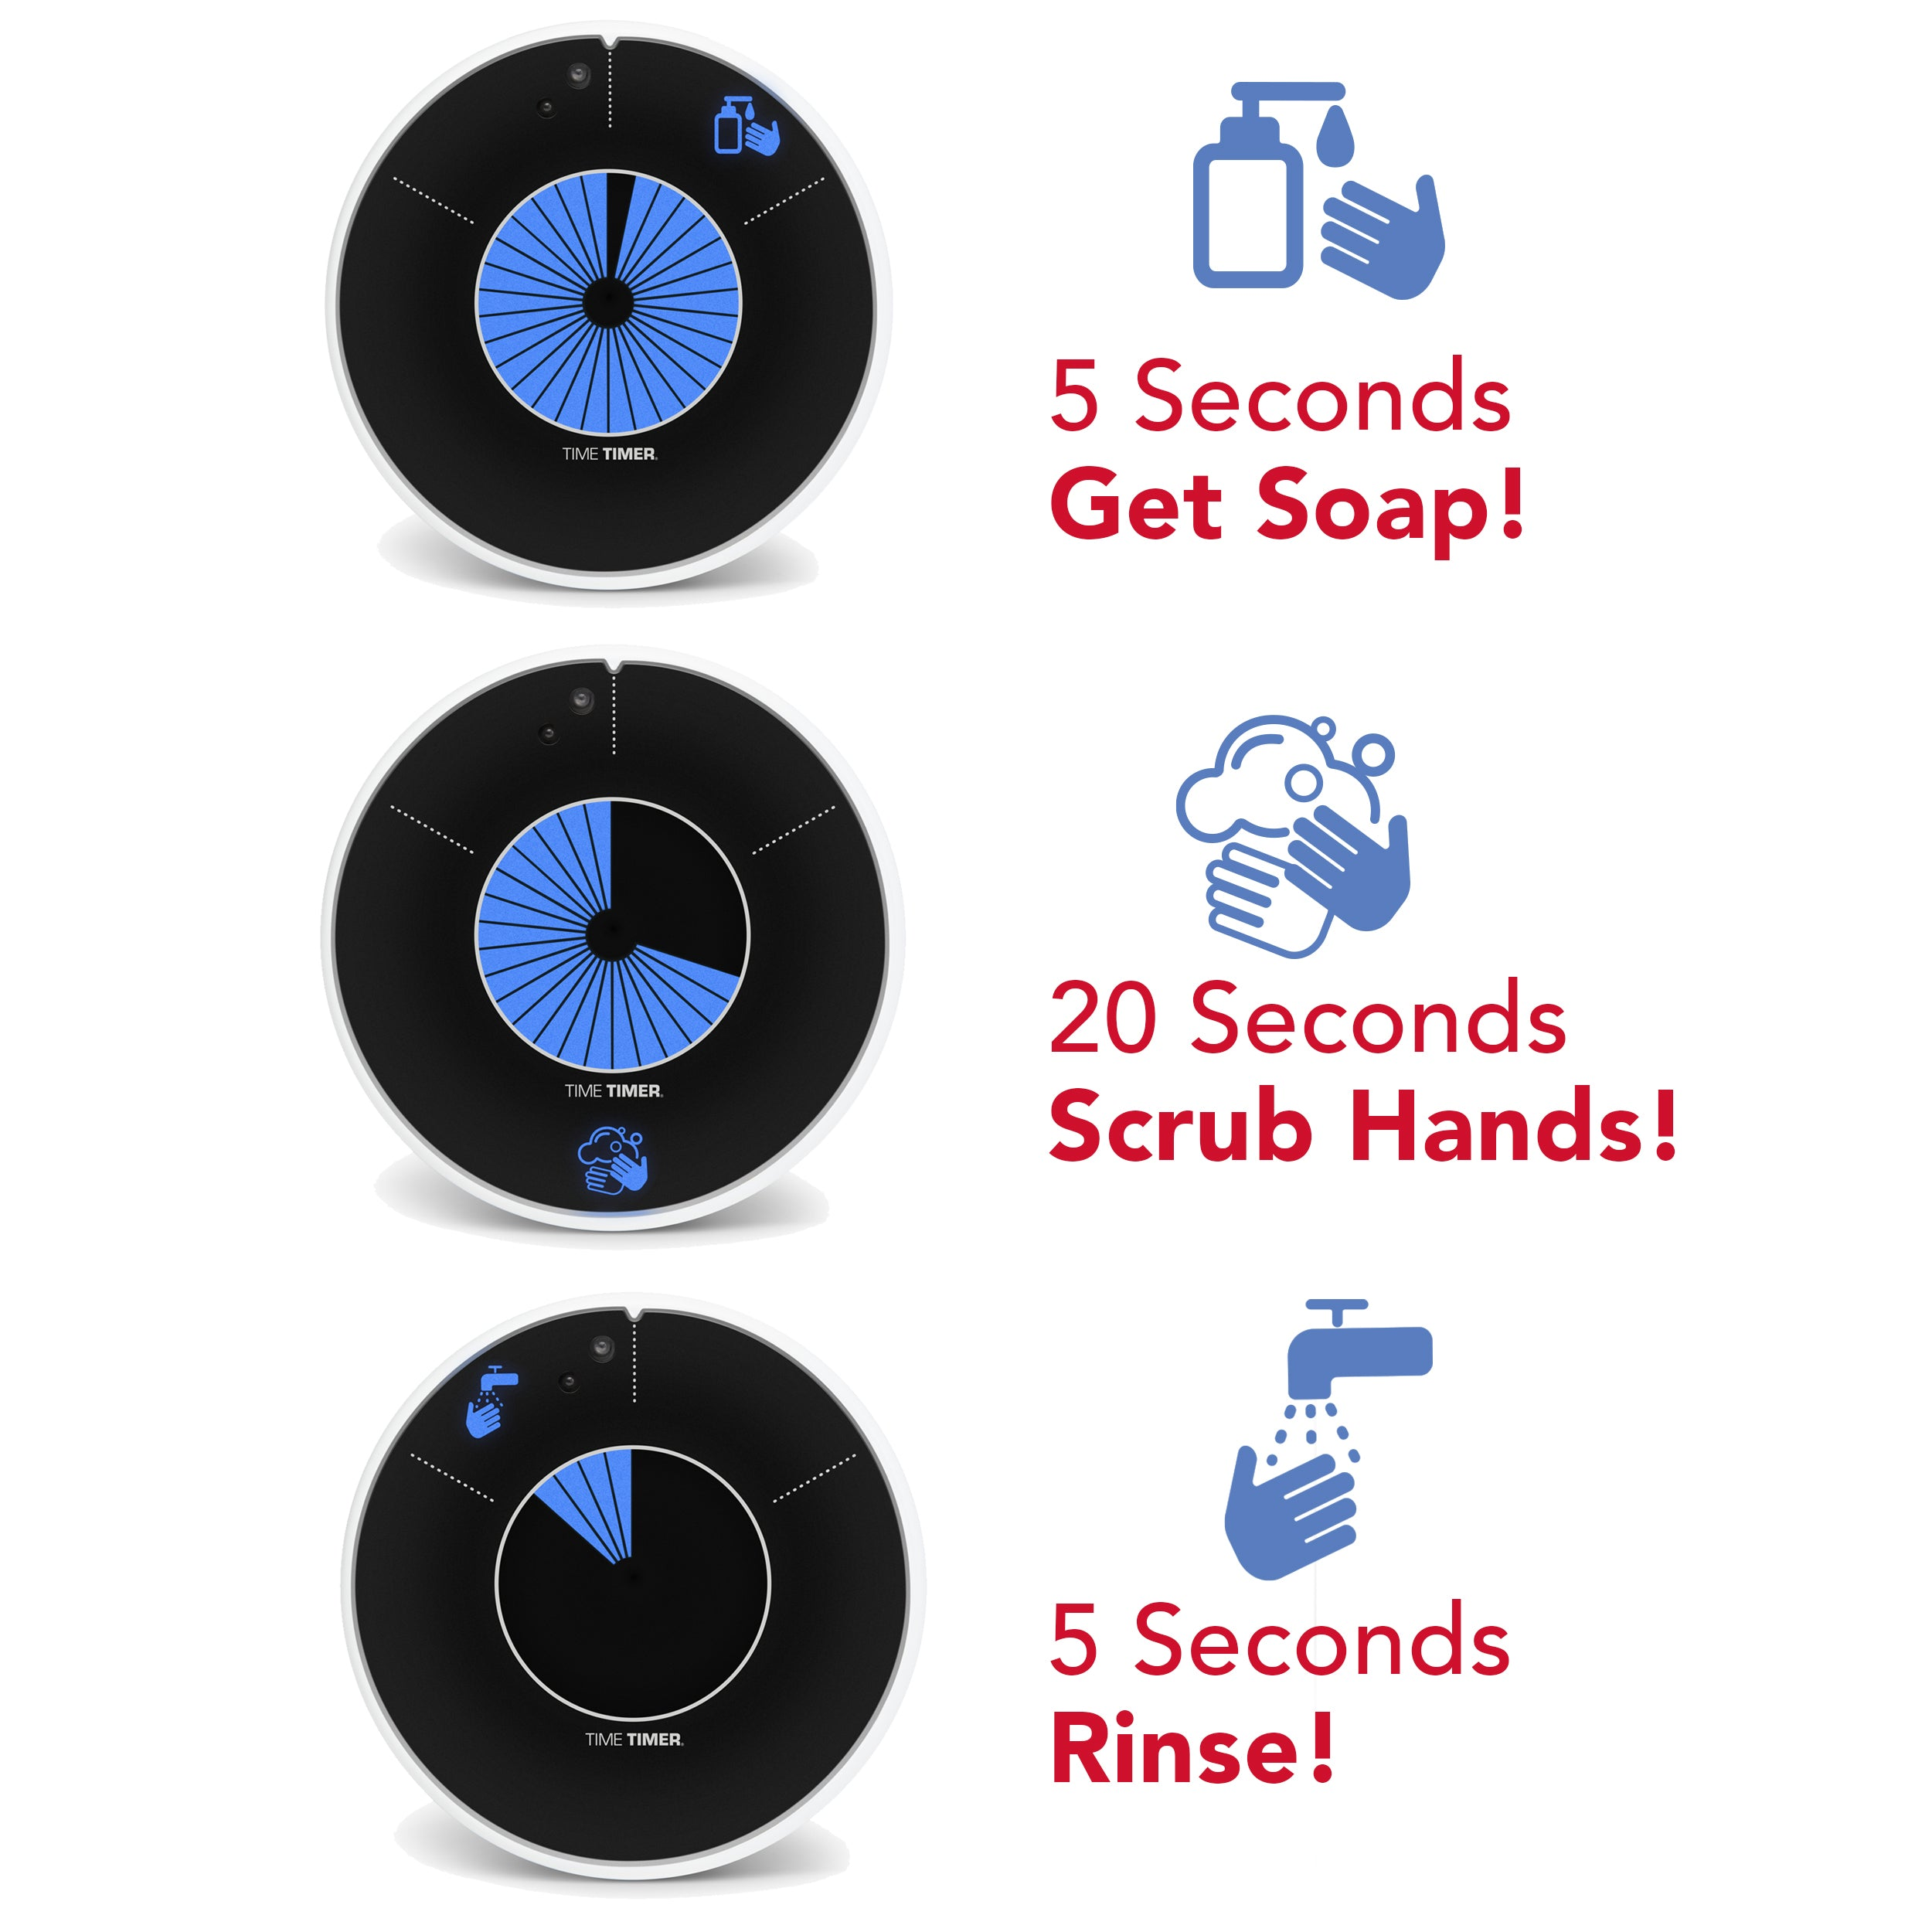 The Time Timer WASH visual timer for handwashing breaks handwashing steps into 3 simple segments. First, 5 seconds for getting soap. Second, 20 seconds for scrubbing (as recommended by the CDC - Center for Disease Control and the WHO World Health Organization. Lastly, 5 more seconds to rinse. 30 seconds in total.